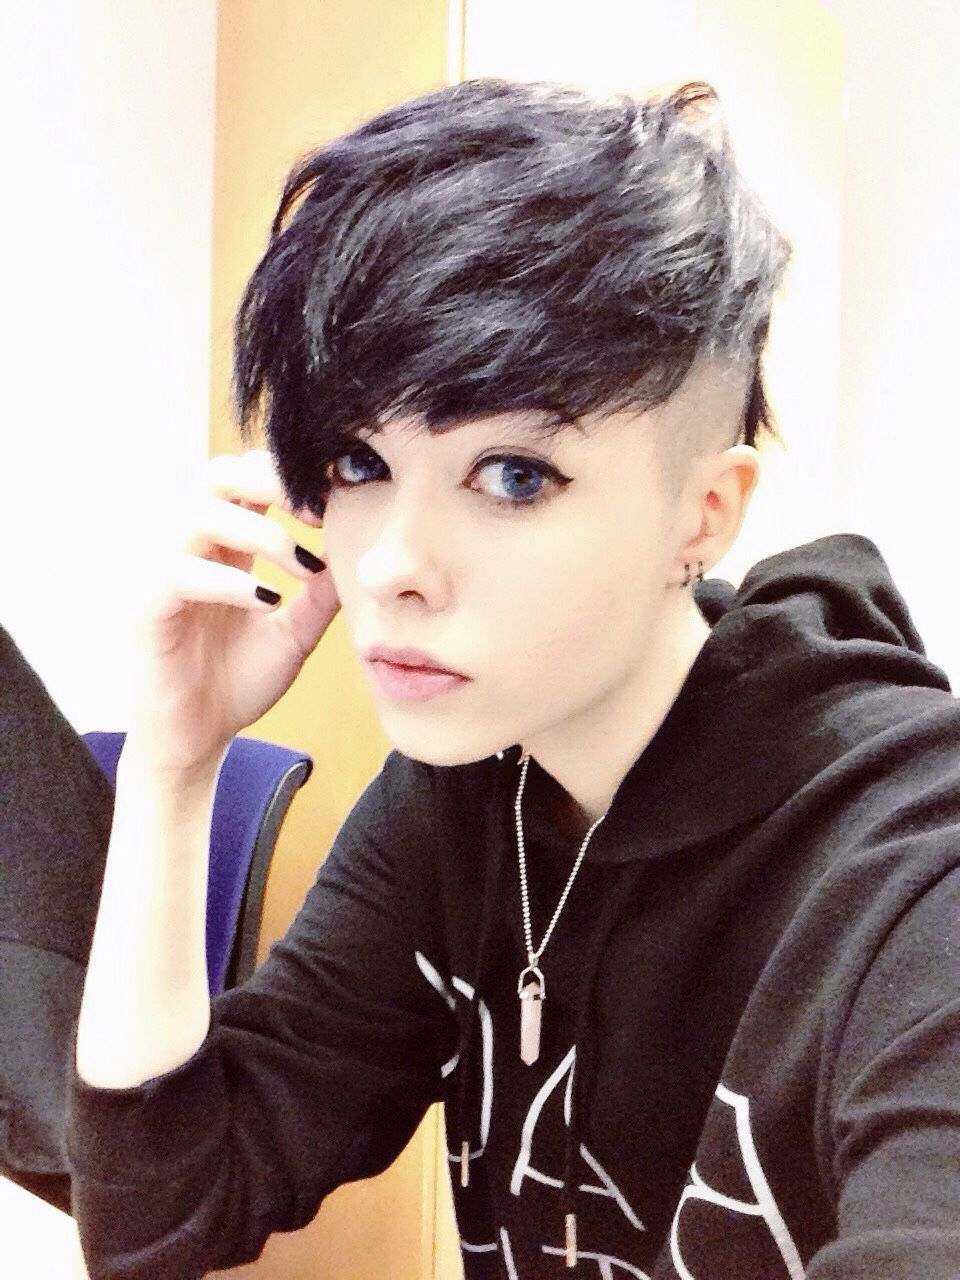 36 Best Punk Girl Hairstyles Image In 2020 Short Punk Hair Edgy Haircuts Girl Haircuts